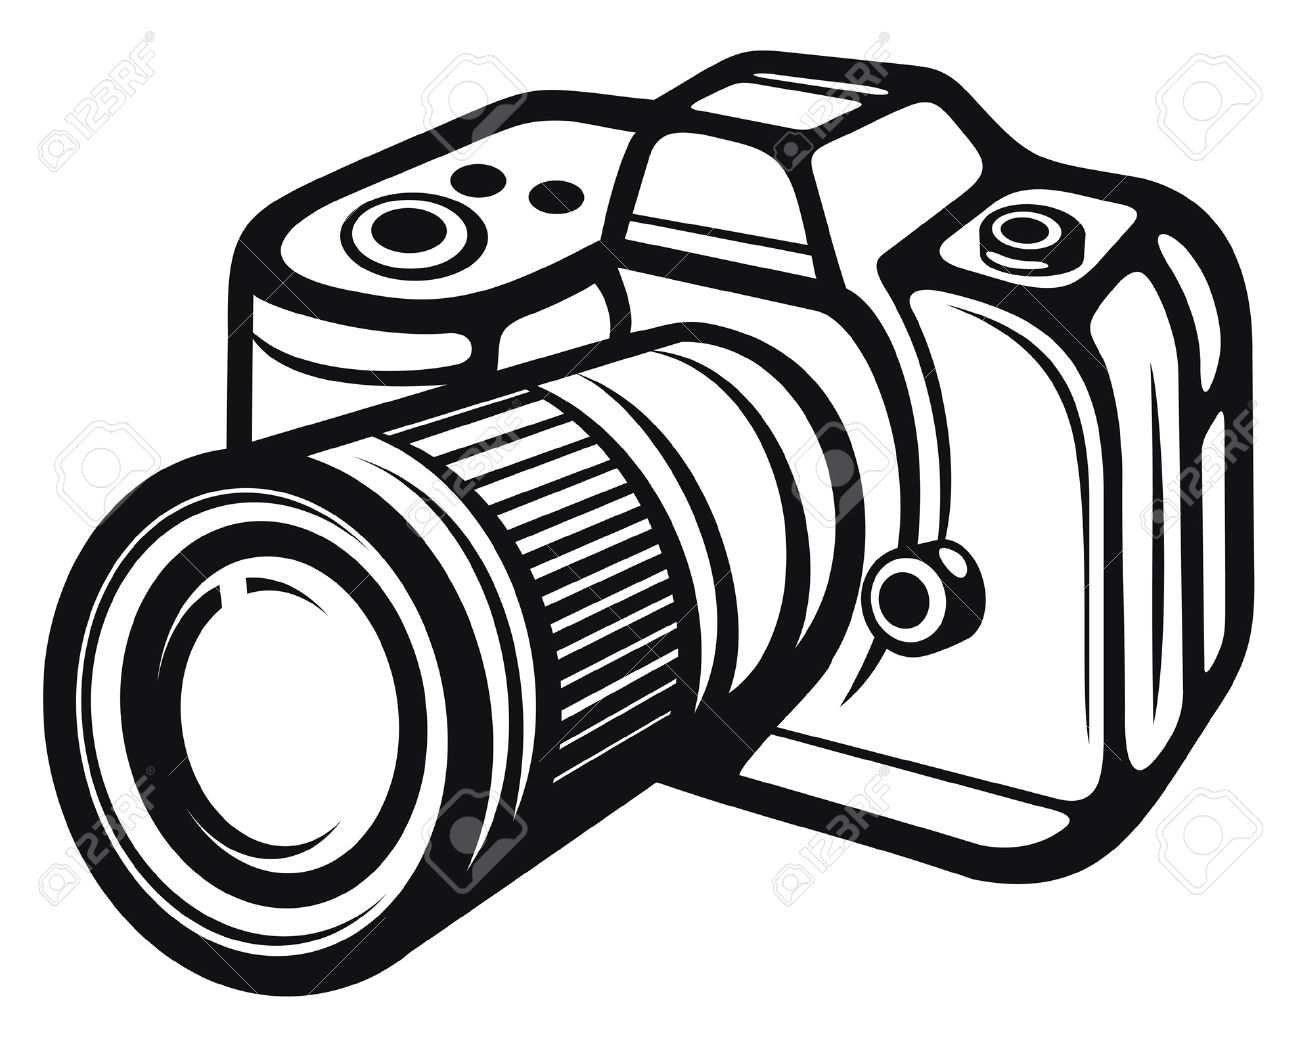 Camera Vector Cliparts | Free download best Camera Vector ...